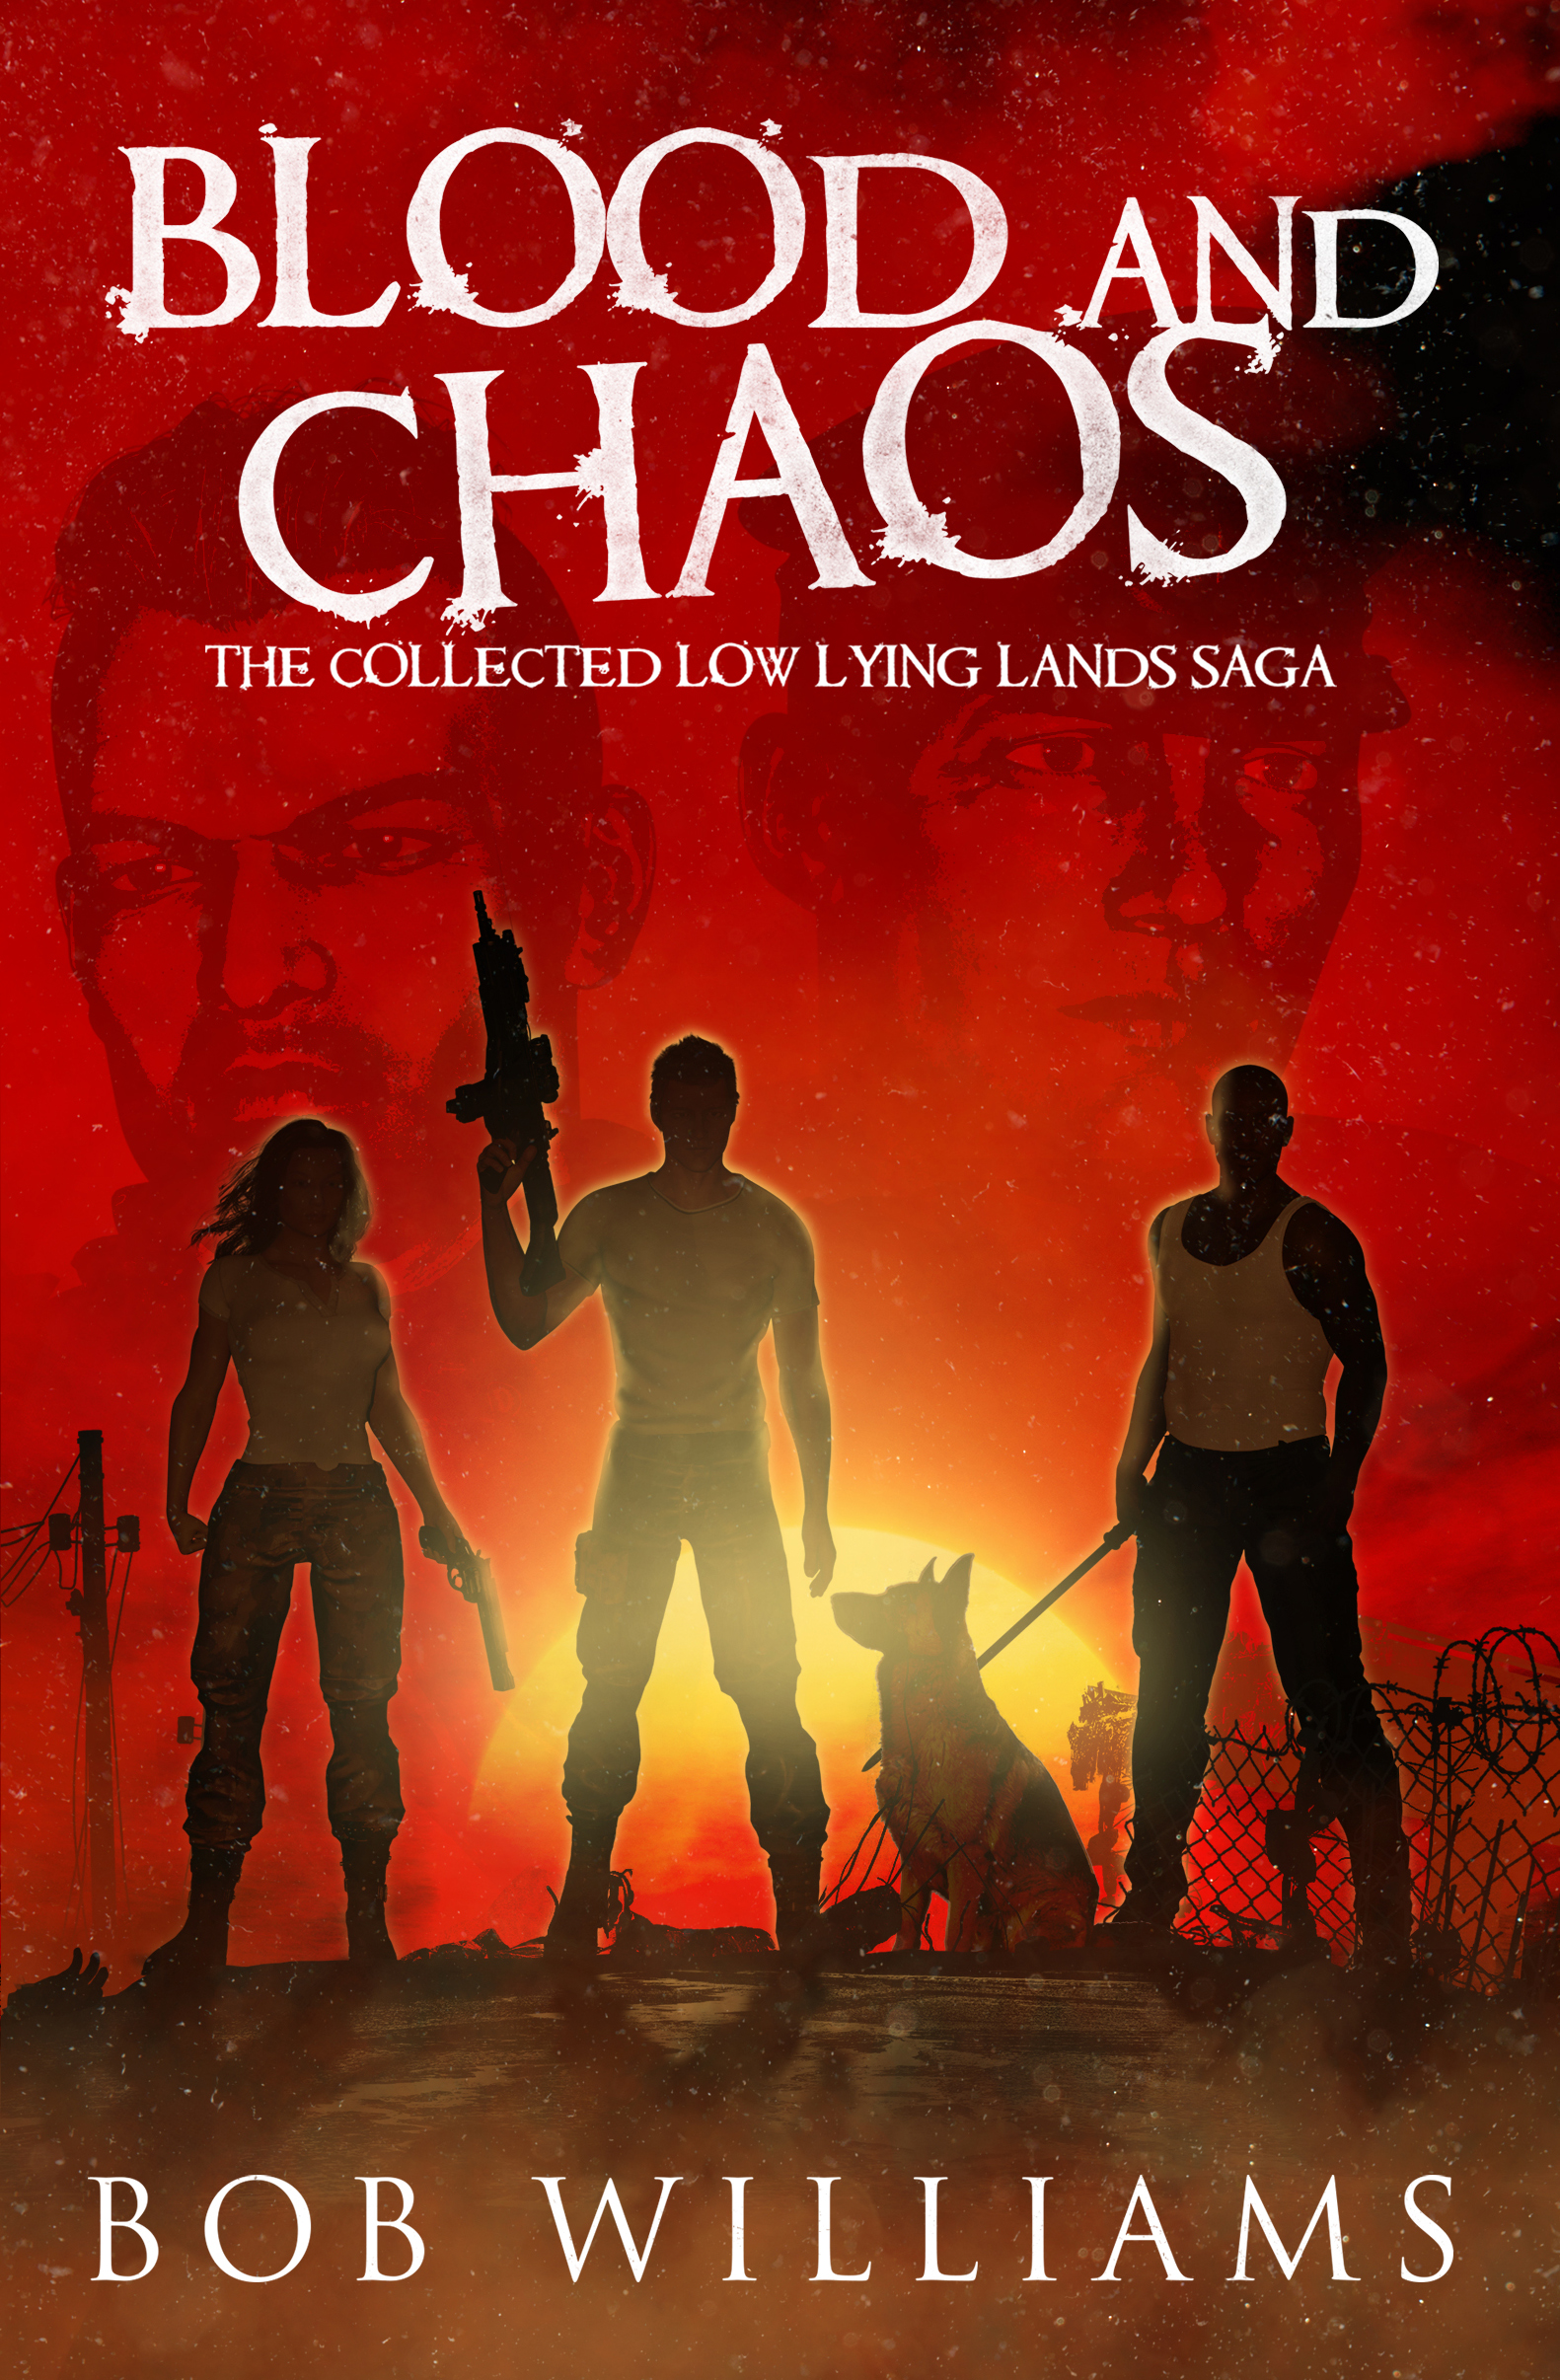 Blood and Chaos by Bob Williams